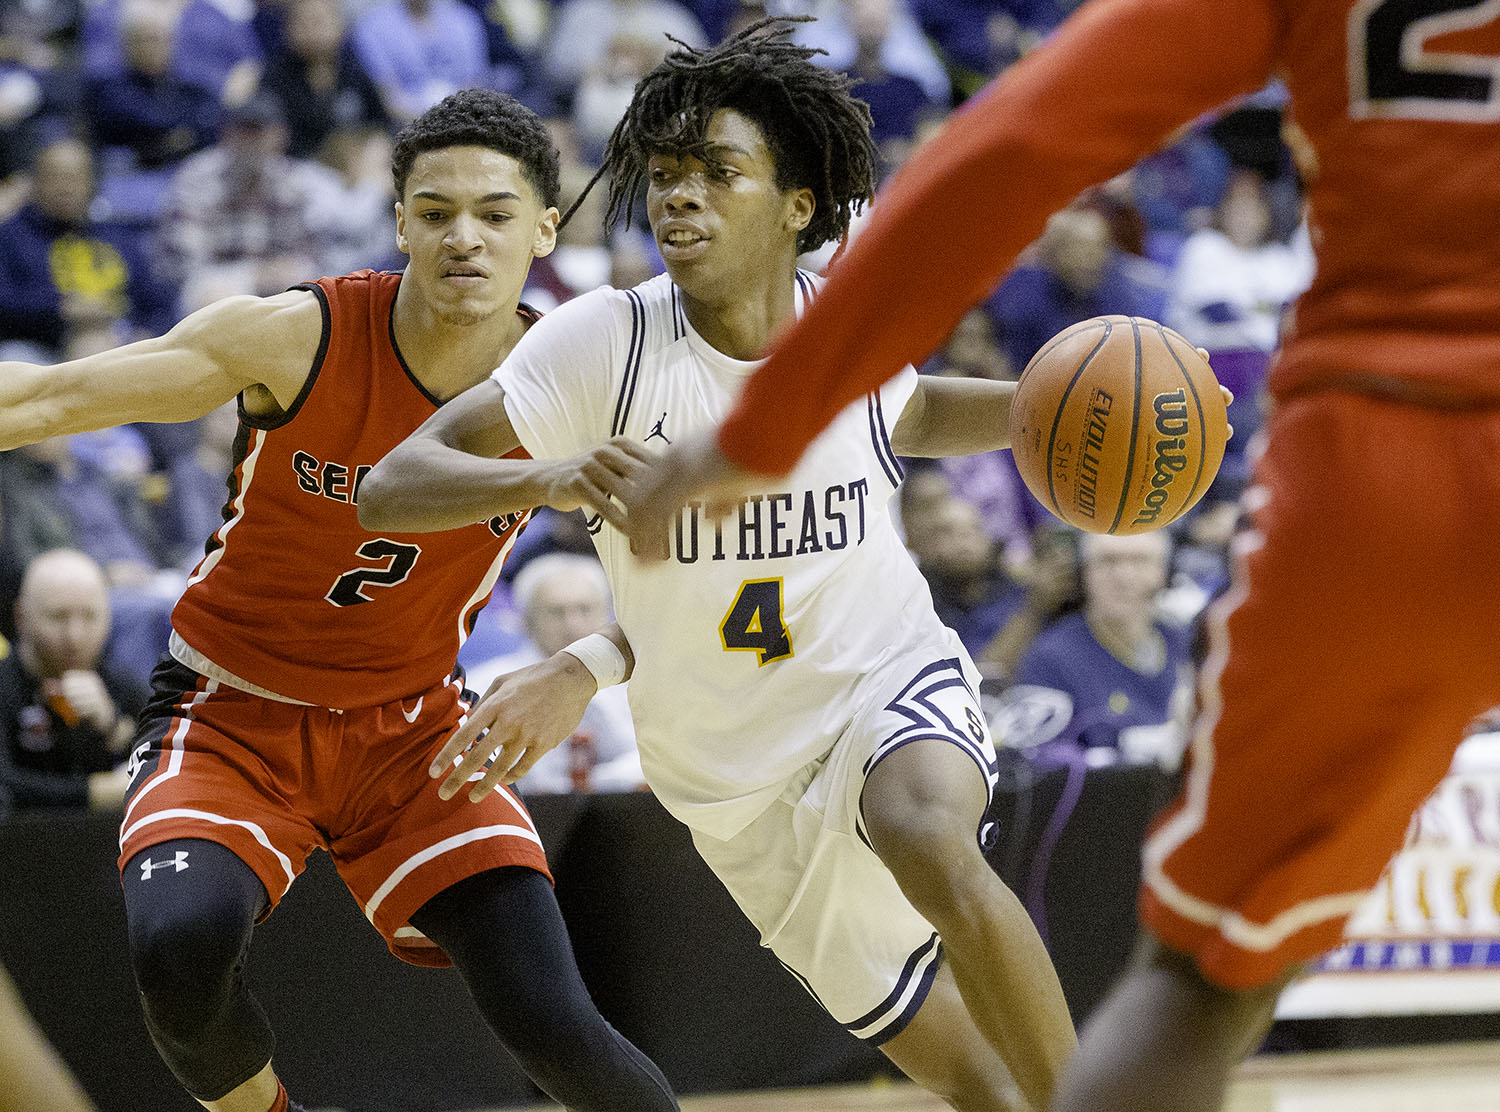 Southeast's Terrion Murdix drives to the hoop against Springfield during the Boys City Tournament at the Bank of Springfield Center Thursday, Jan. 17, 2019.  [Ted Schurter/The State Journal-Register]